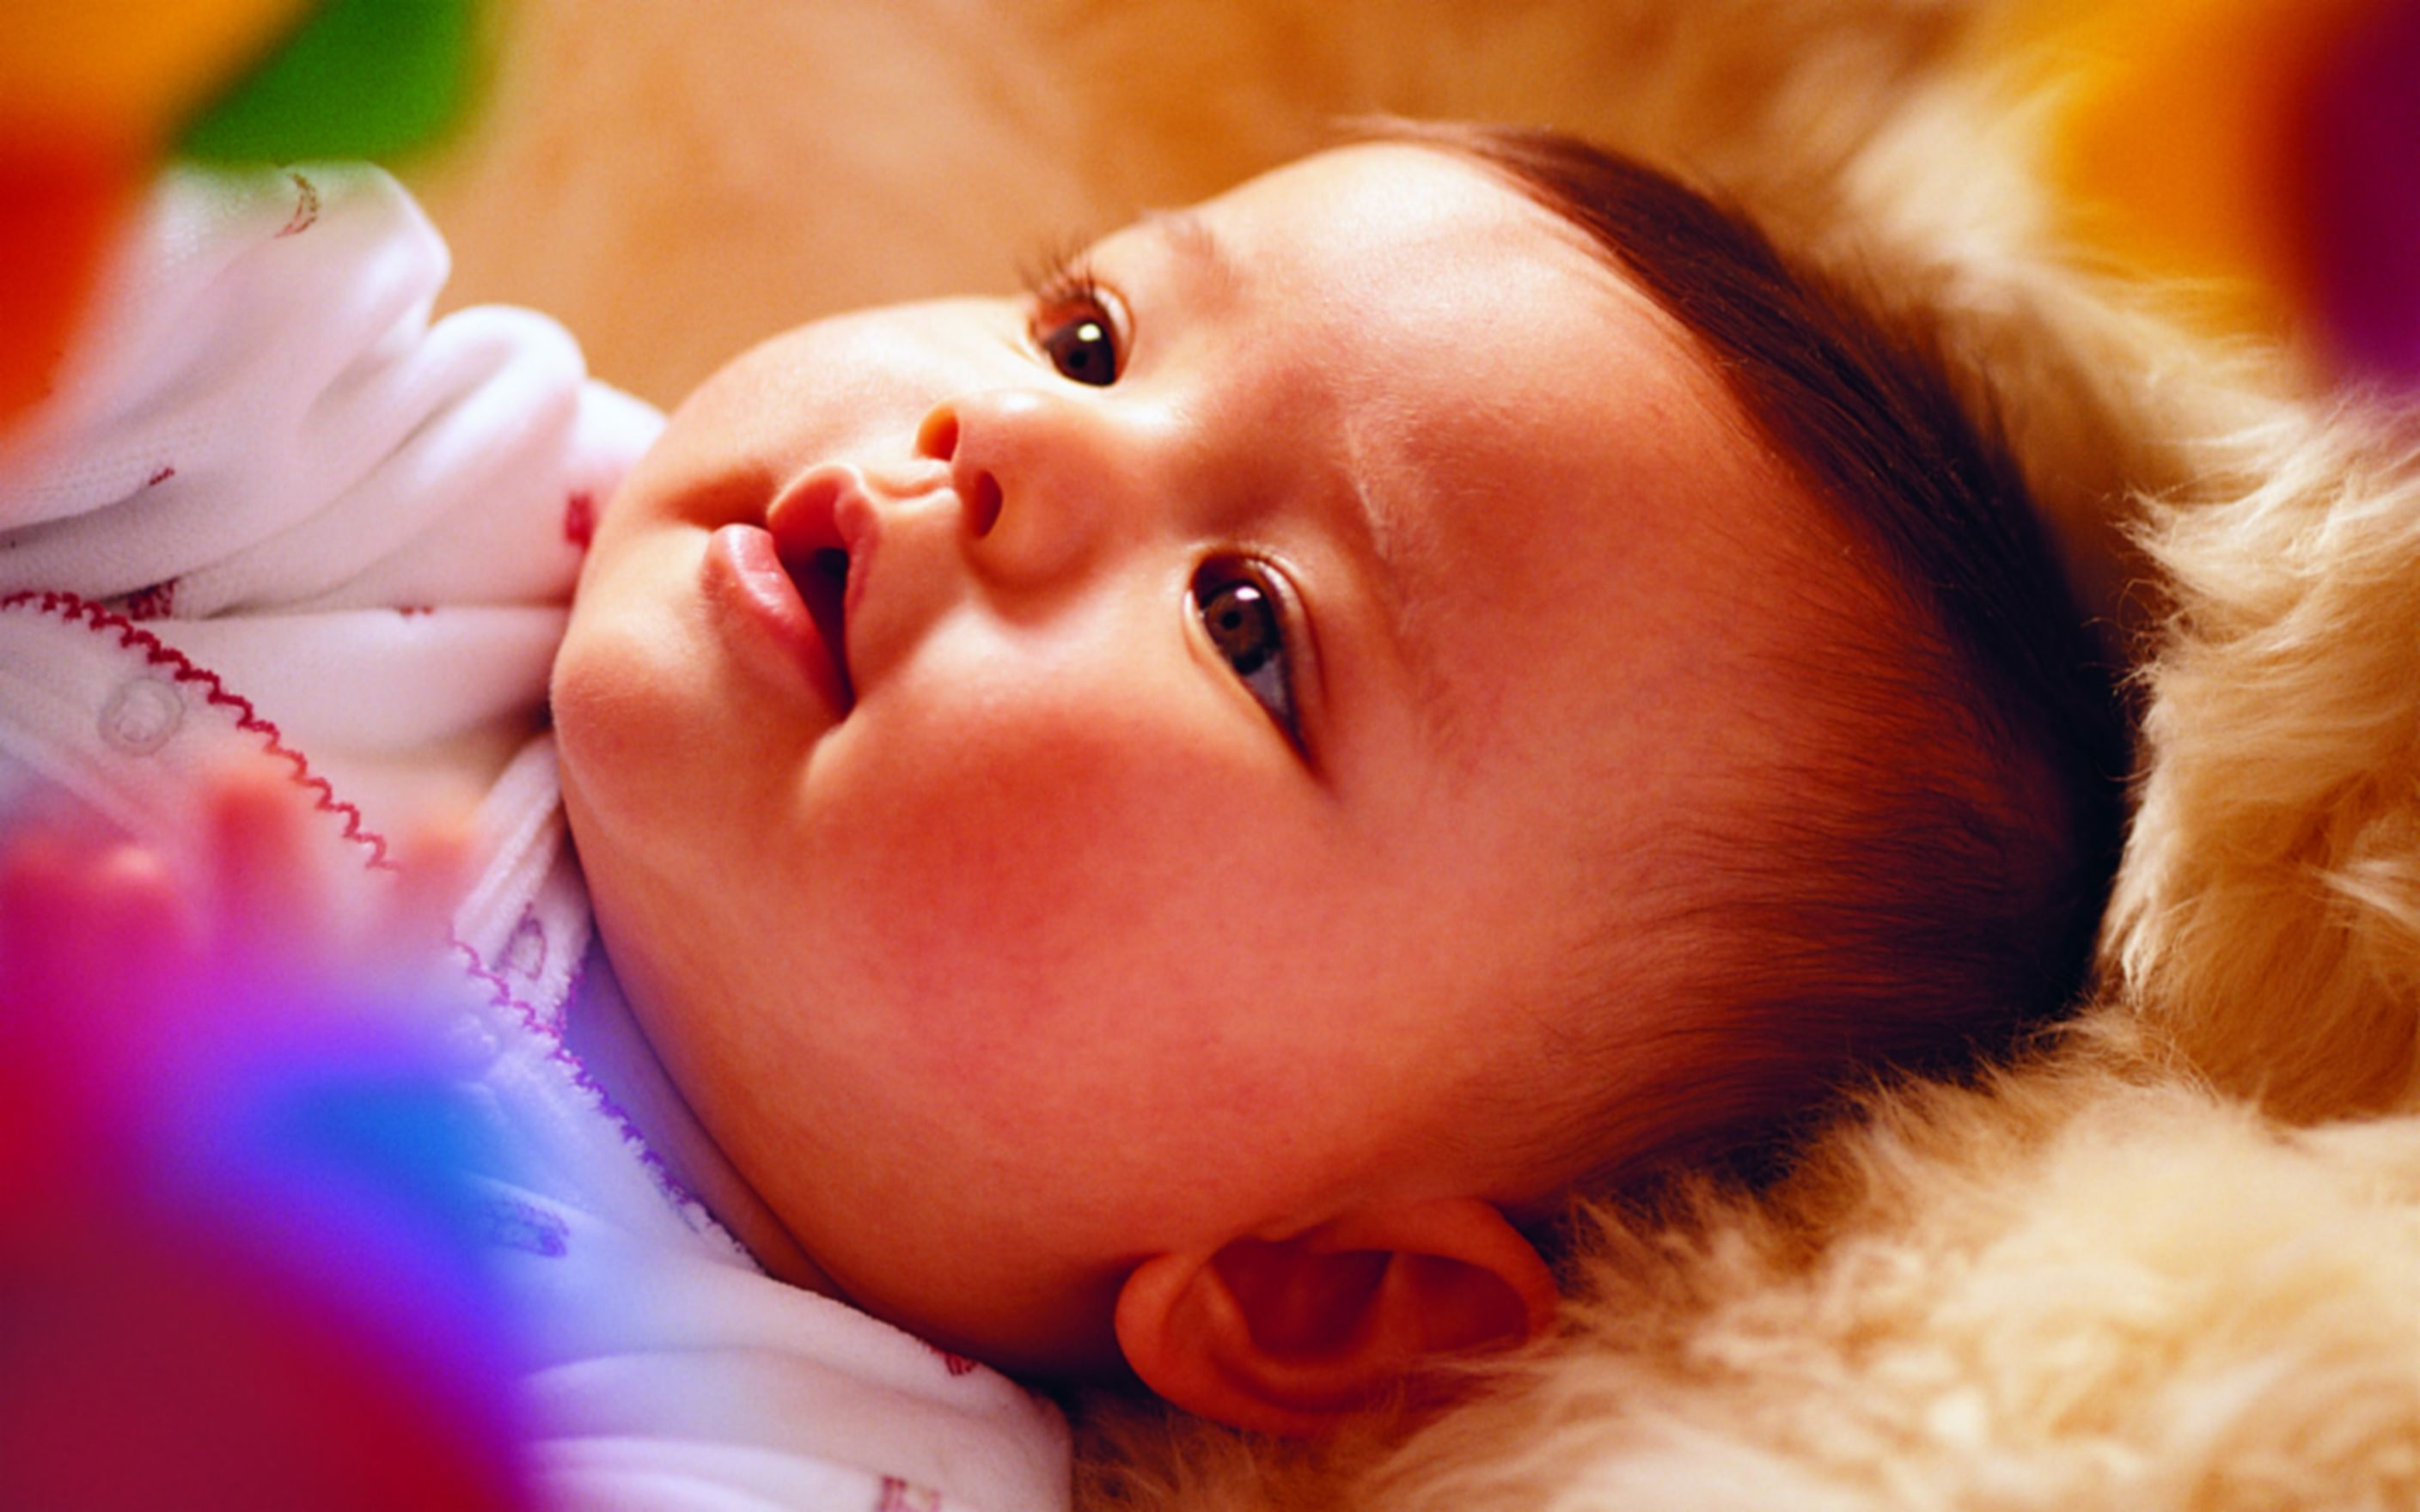 Download free HD Cute Baby 51 Wide Wallpaper, image